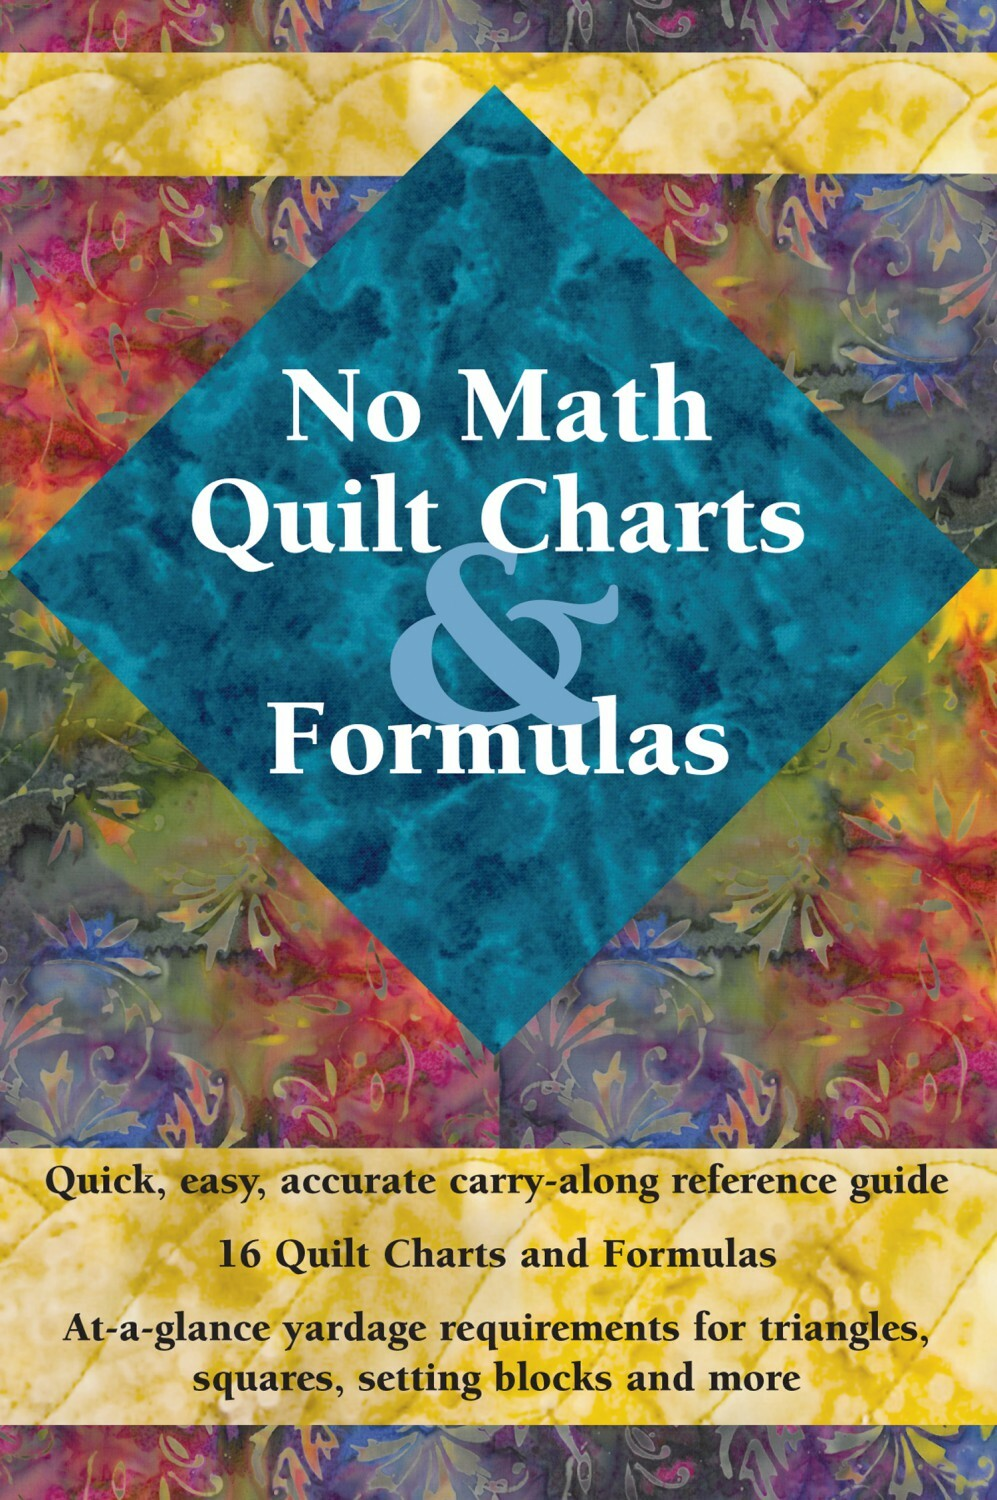 No Math Quilt Charts and Formulas 56461